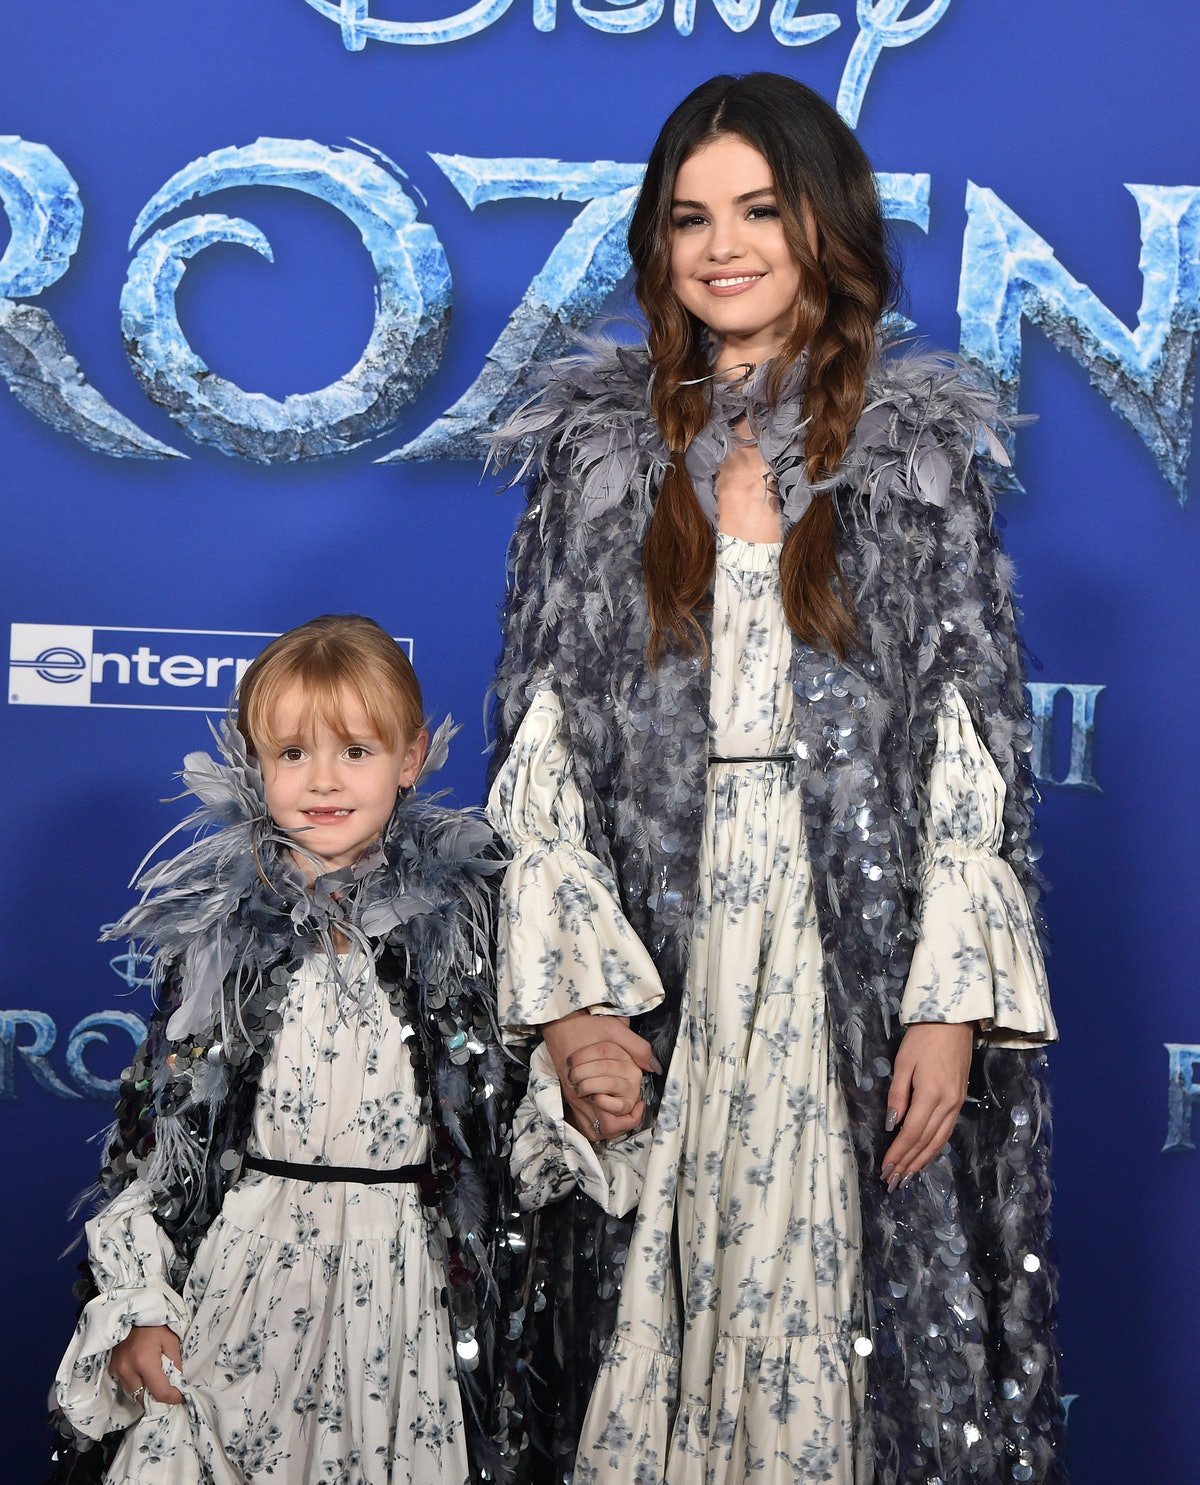 Selena Gomez & Her Sister At The 'Frozen 2' Premiere look like they were both living their best lif...